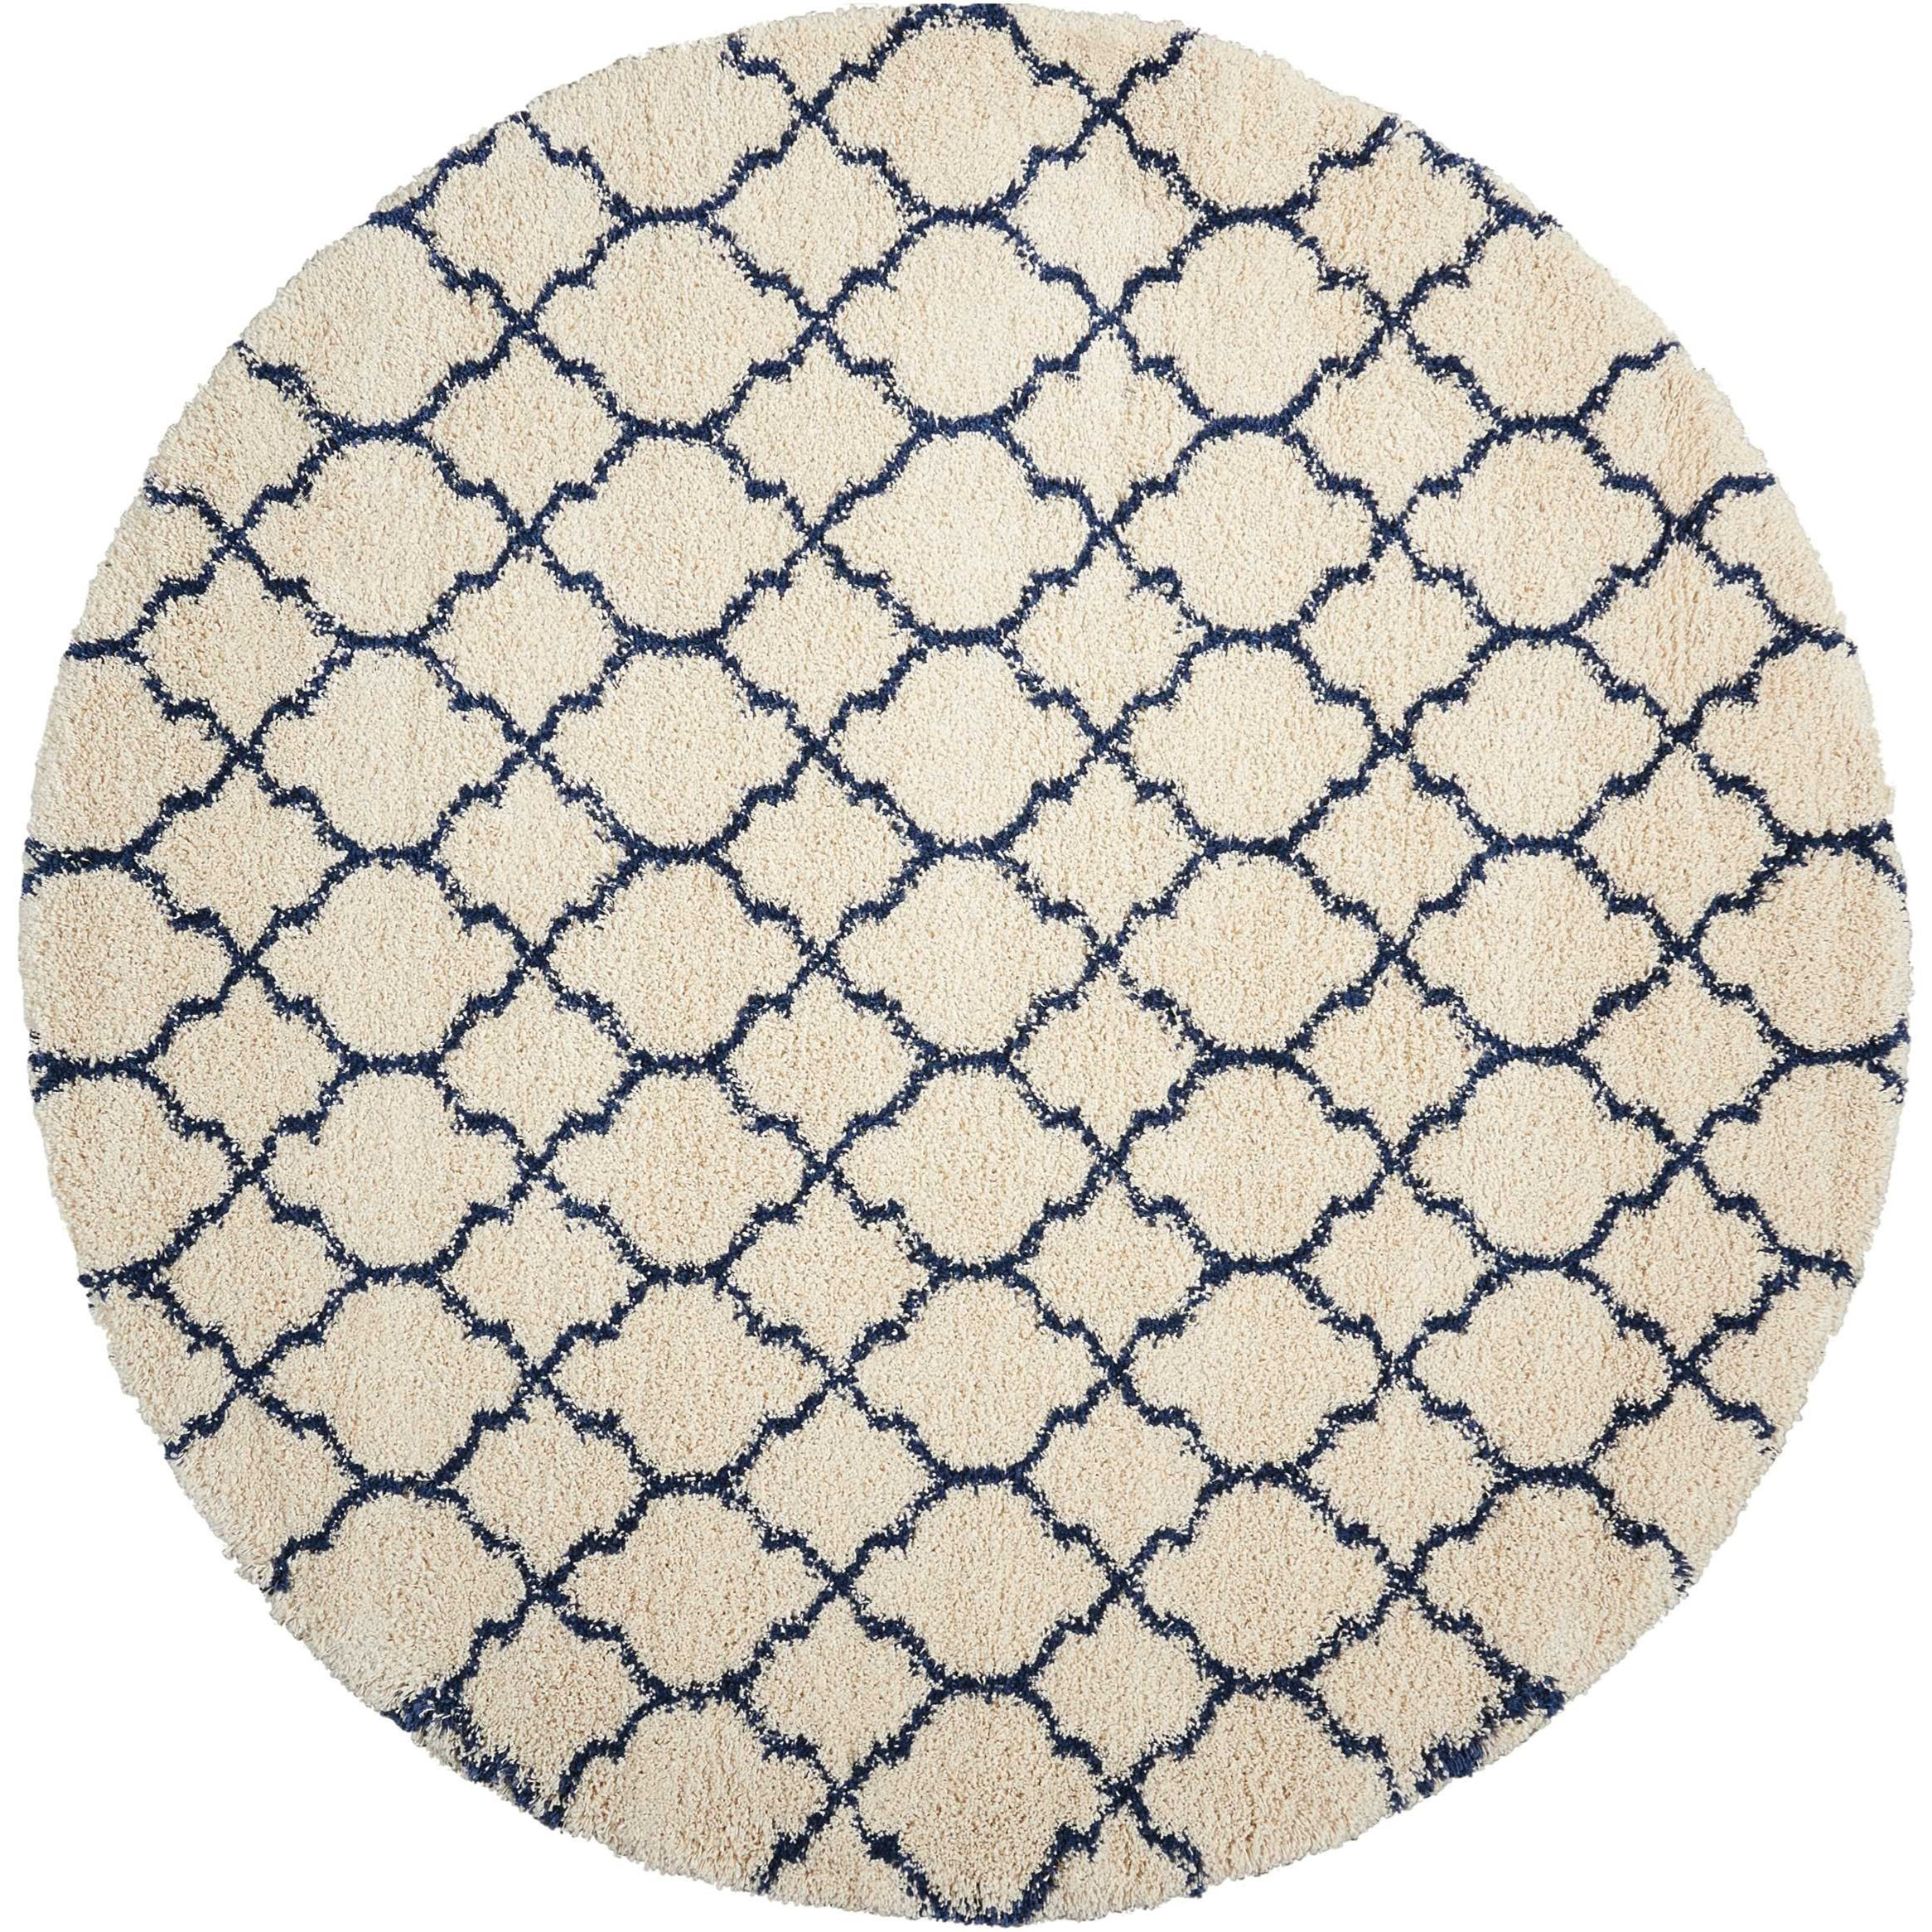 Amore Amore AMOR2 Blue and Ivory 8' Round   Rug by Nourison at Home Collections Furniture